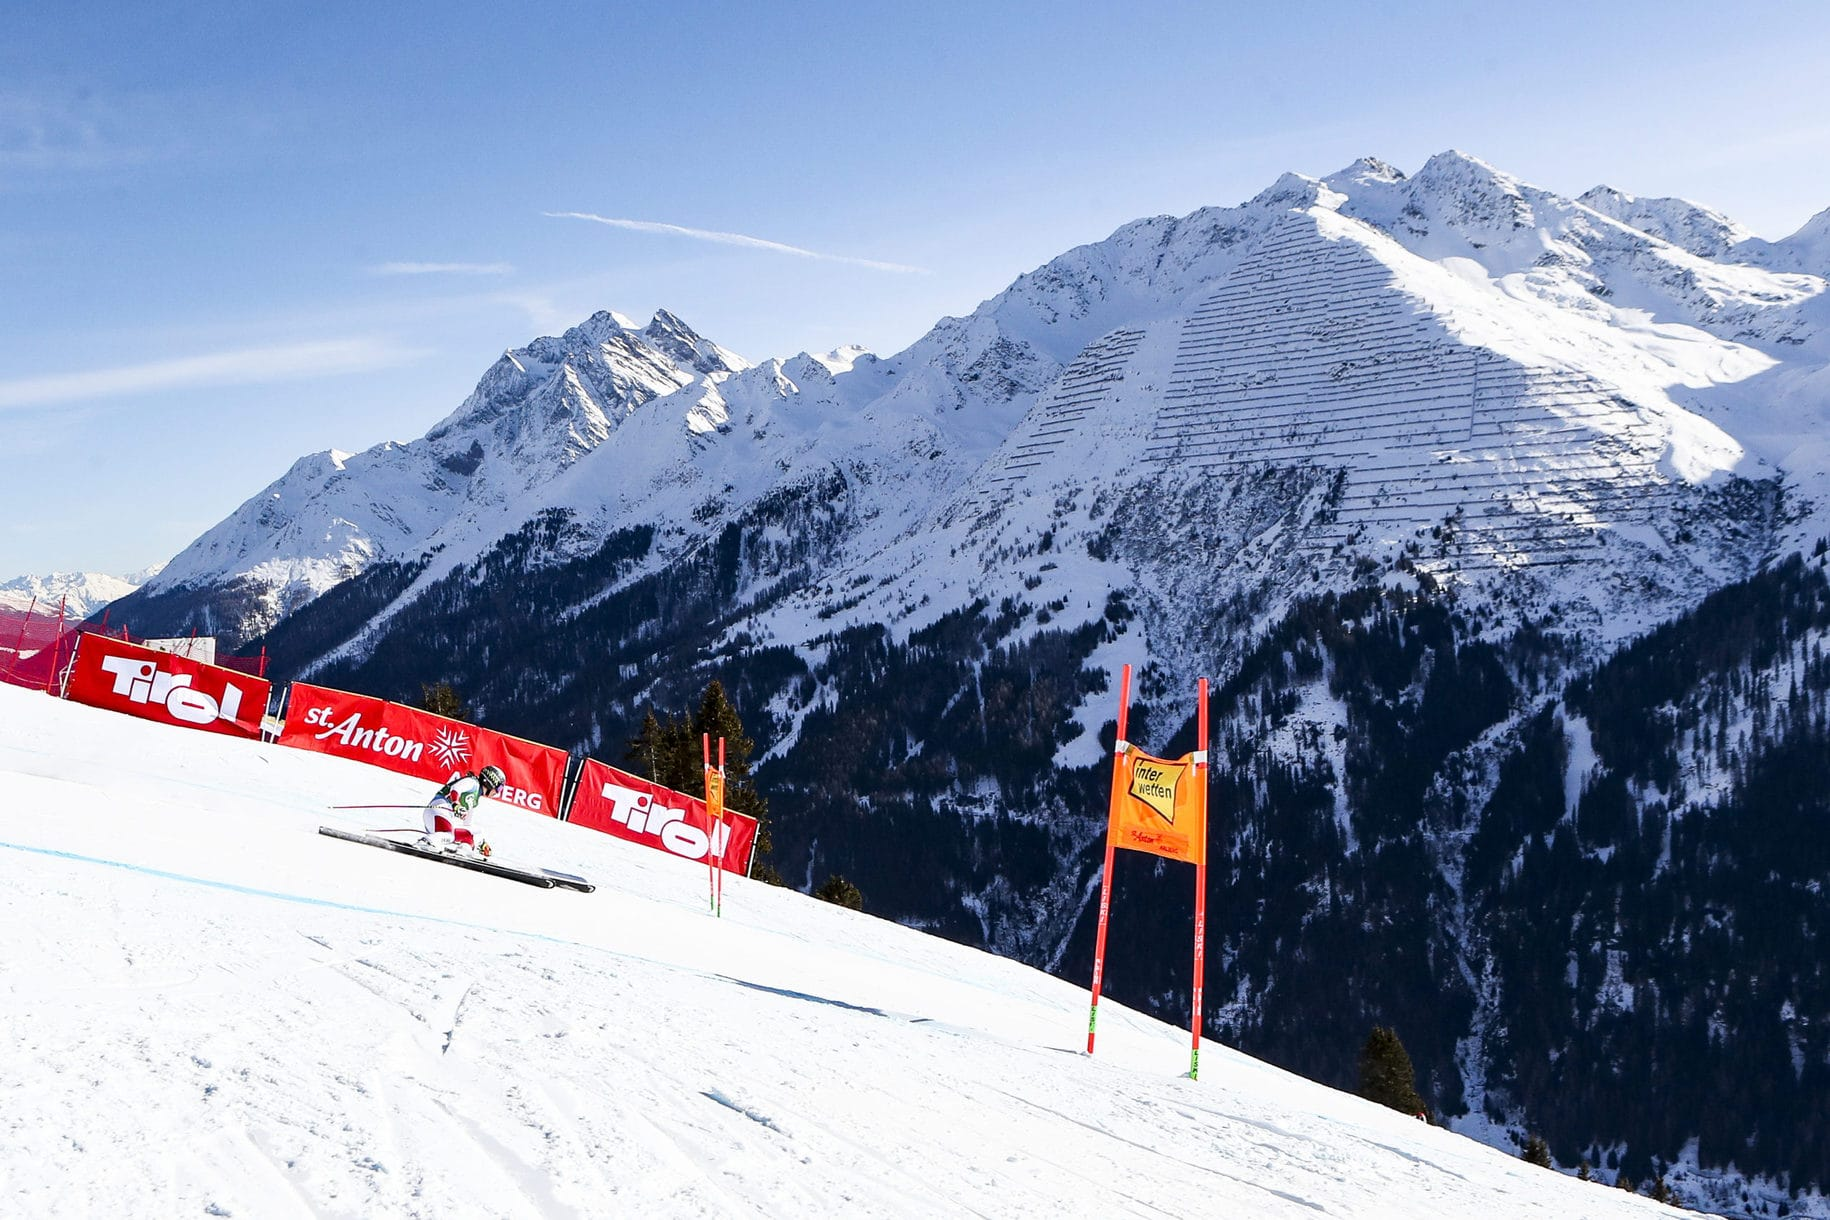 SANKT ANTON,AUSTRIA,09.JAN.21 - ALPINE SKIING - FIS World Cup, downhill, ladies. Image shows Wendy Holdener (SUI). Photo: GEPA pictures/ Patrick Steiner